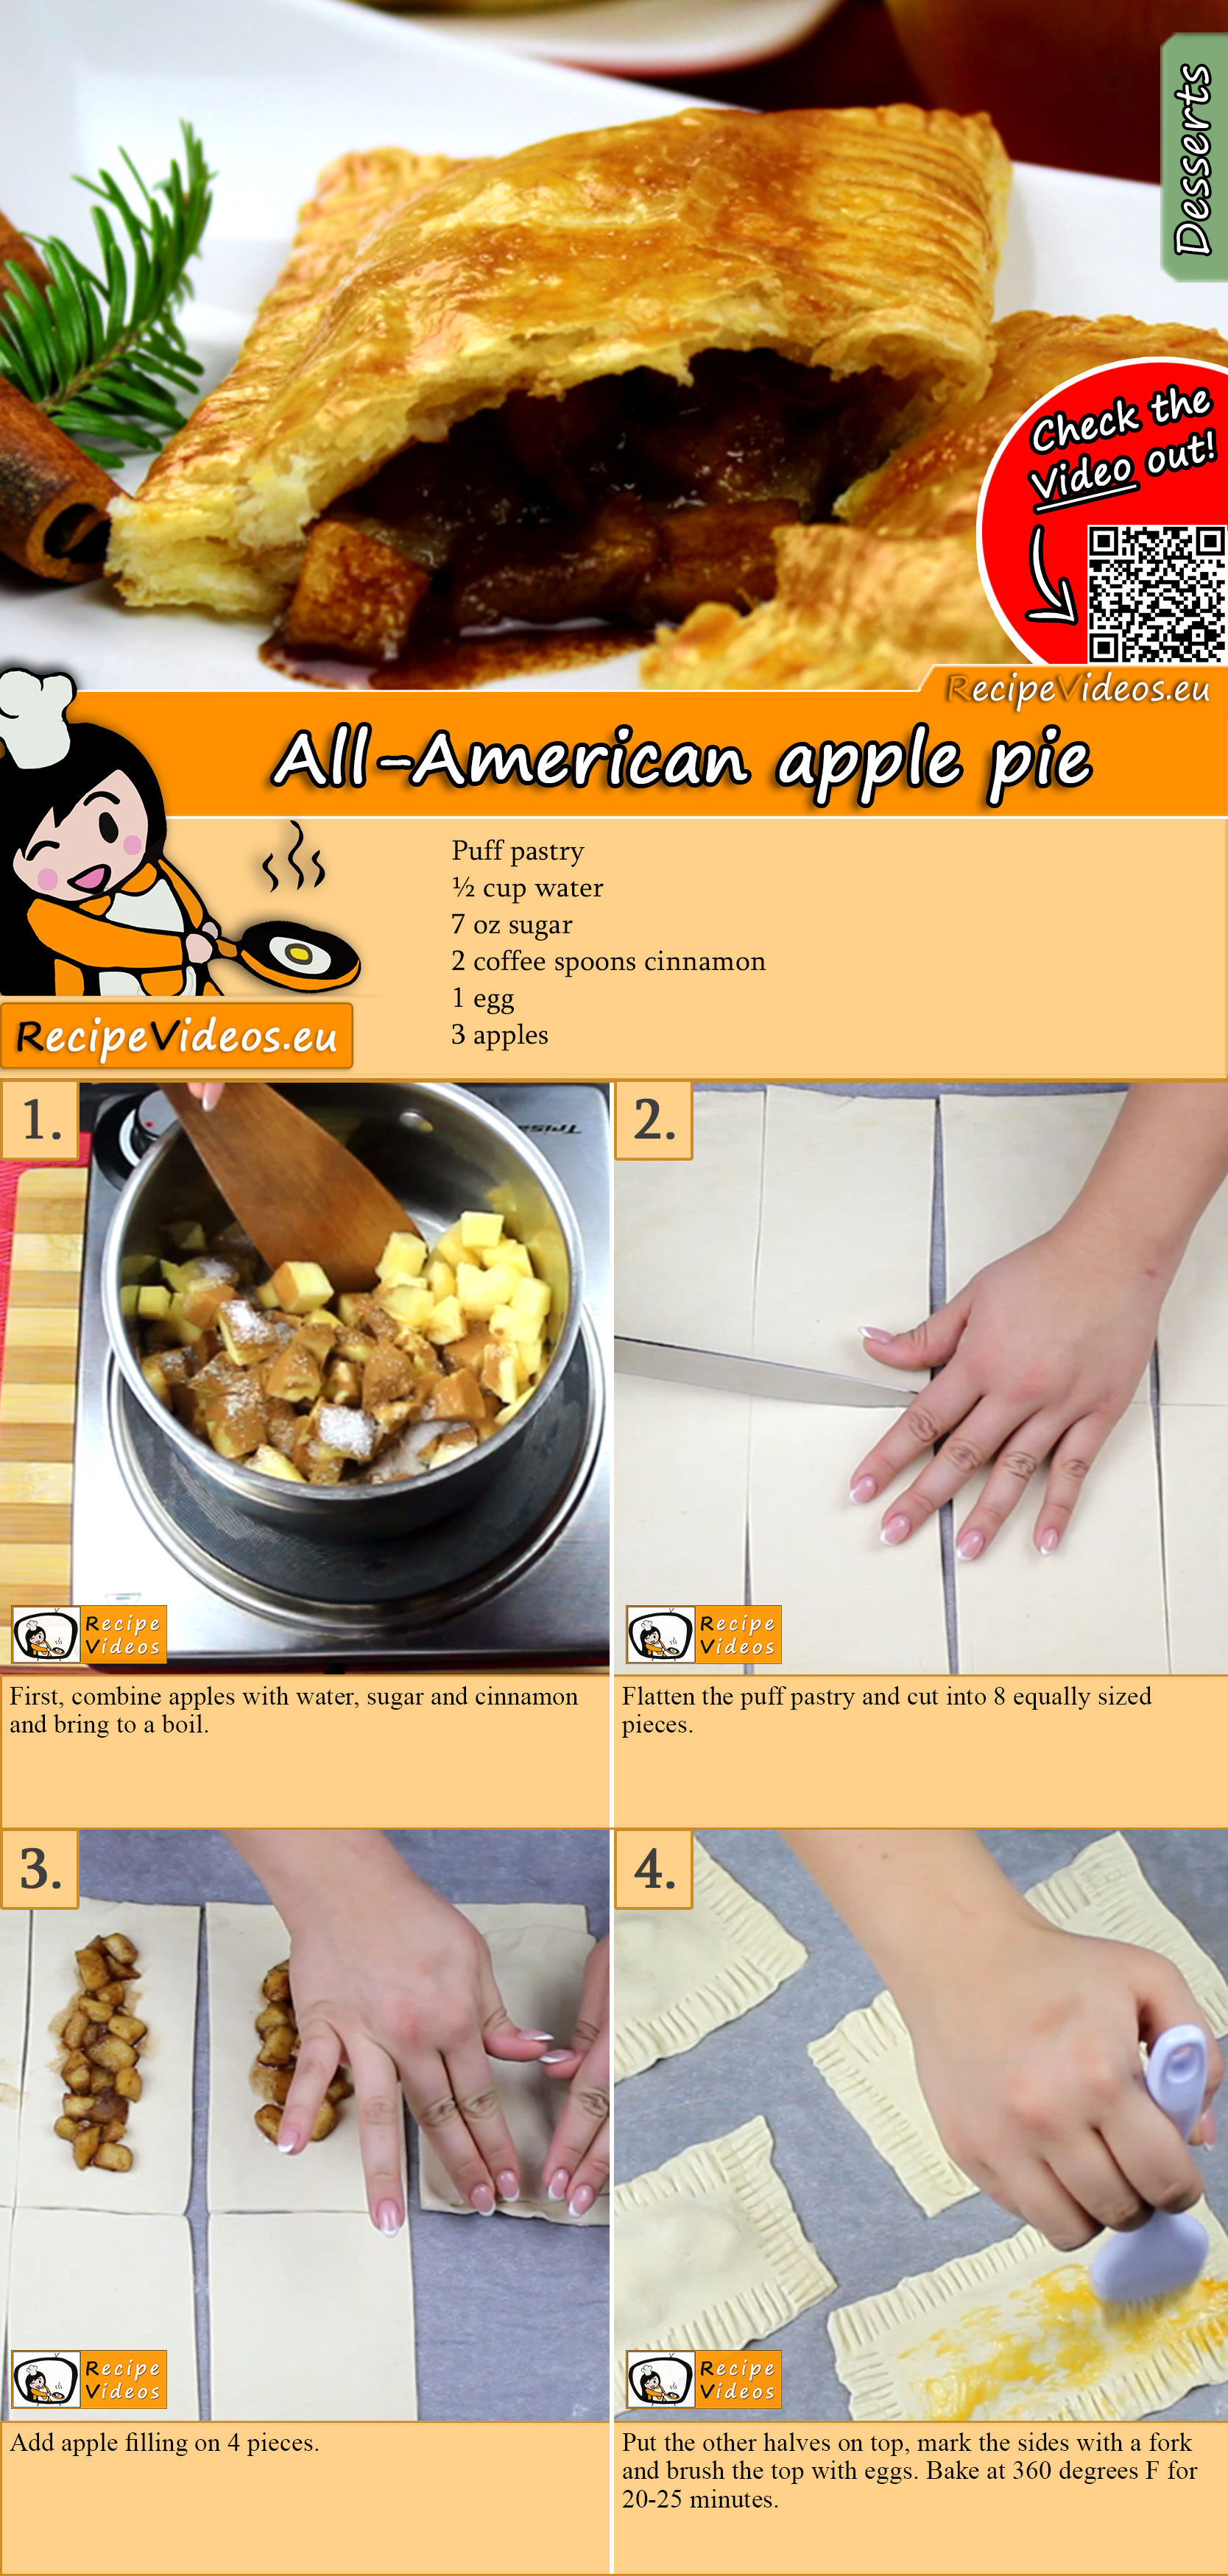 All-American apple pie recipe with video